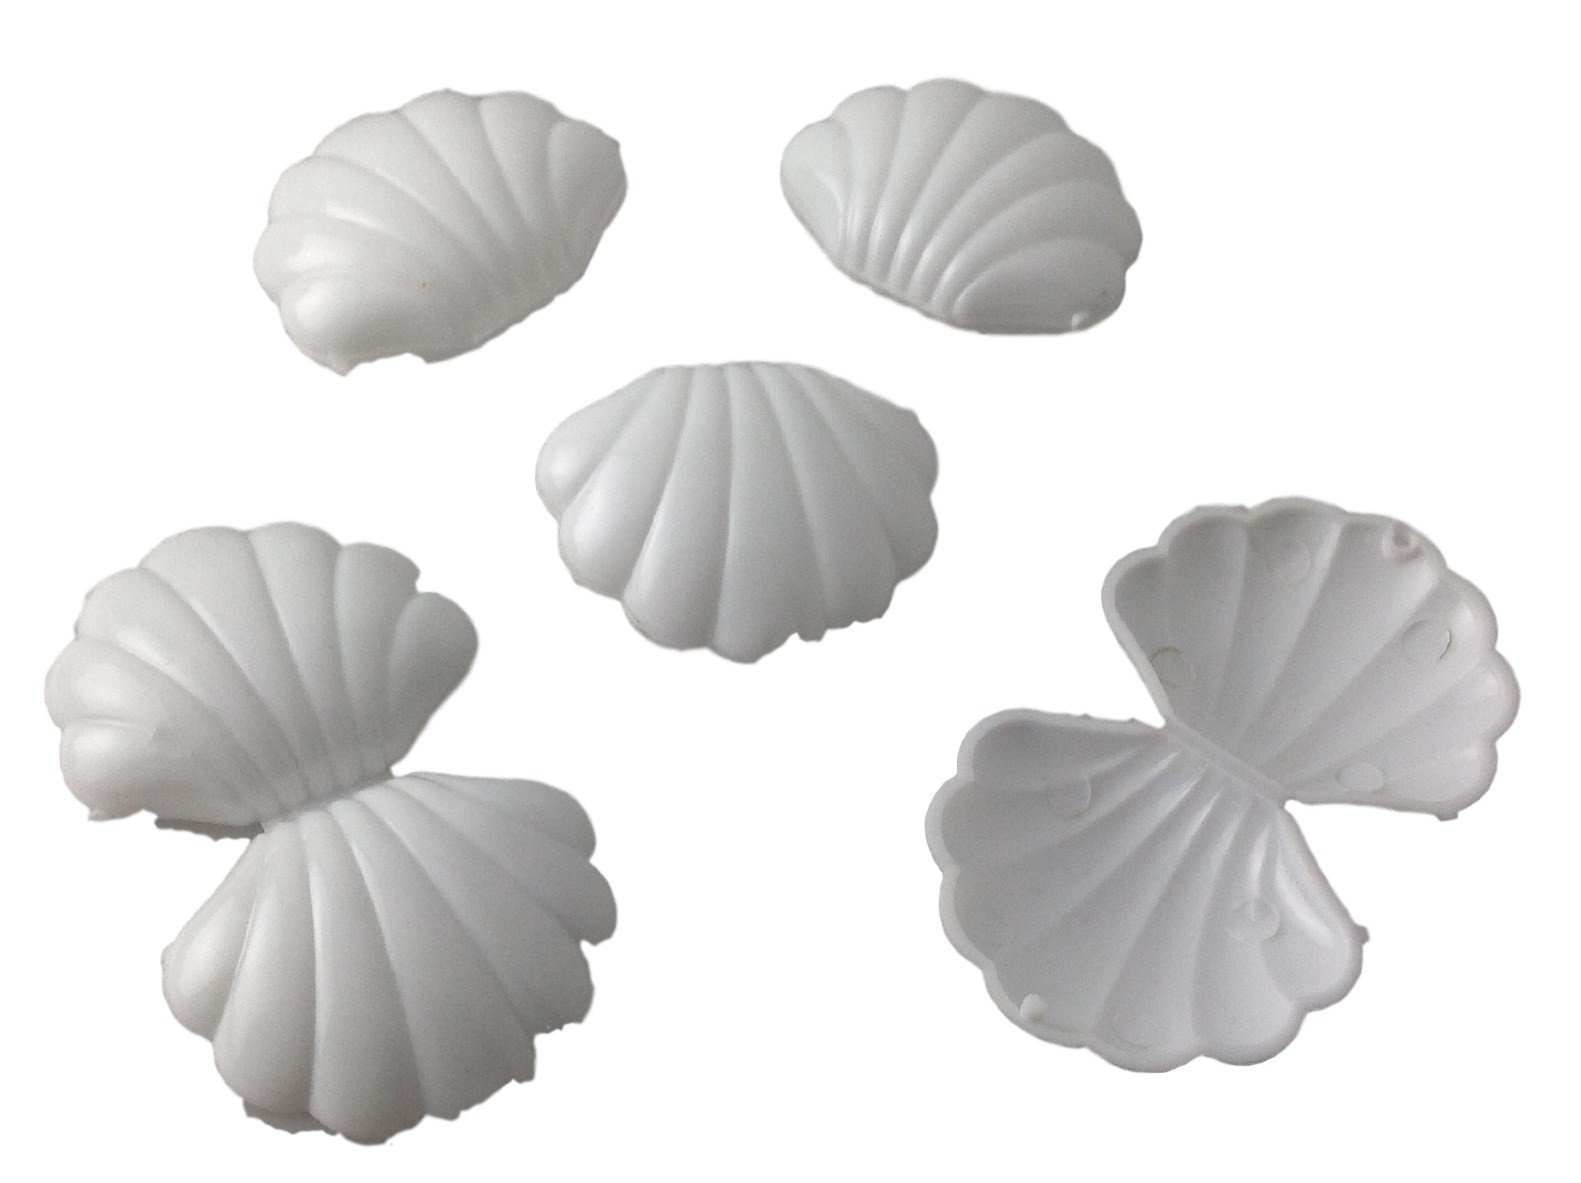 NST 144 Mini White Plastic Shells Candy Favor Boxes for Showers and Birthdays